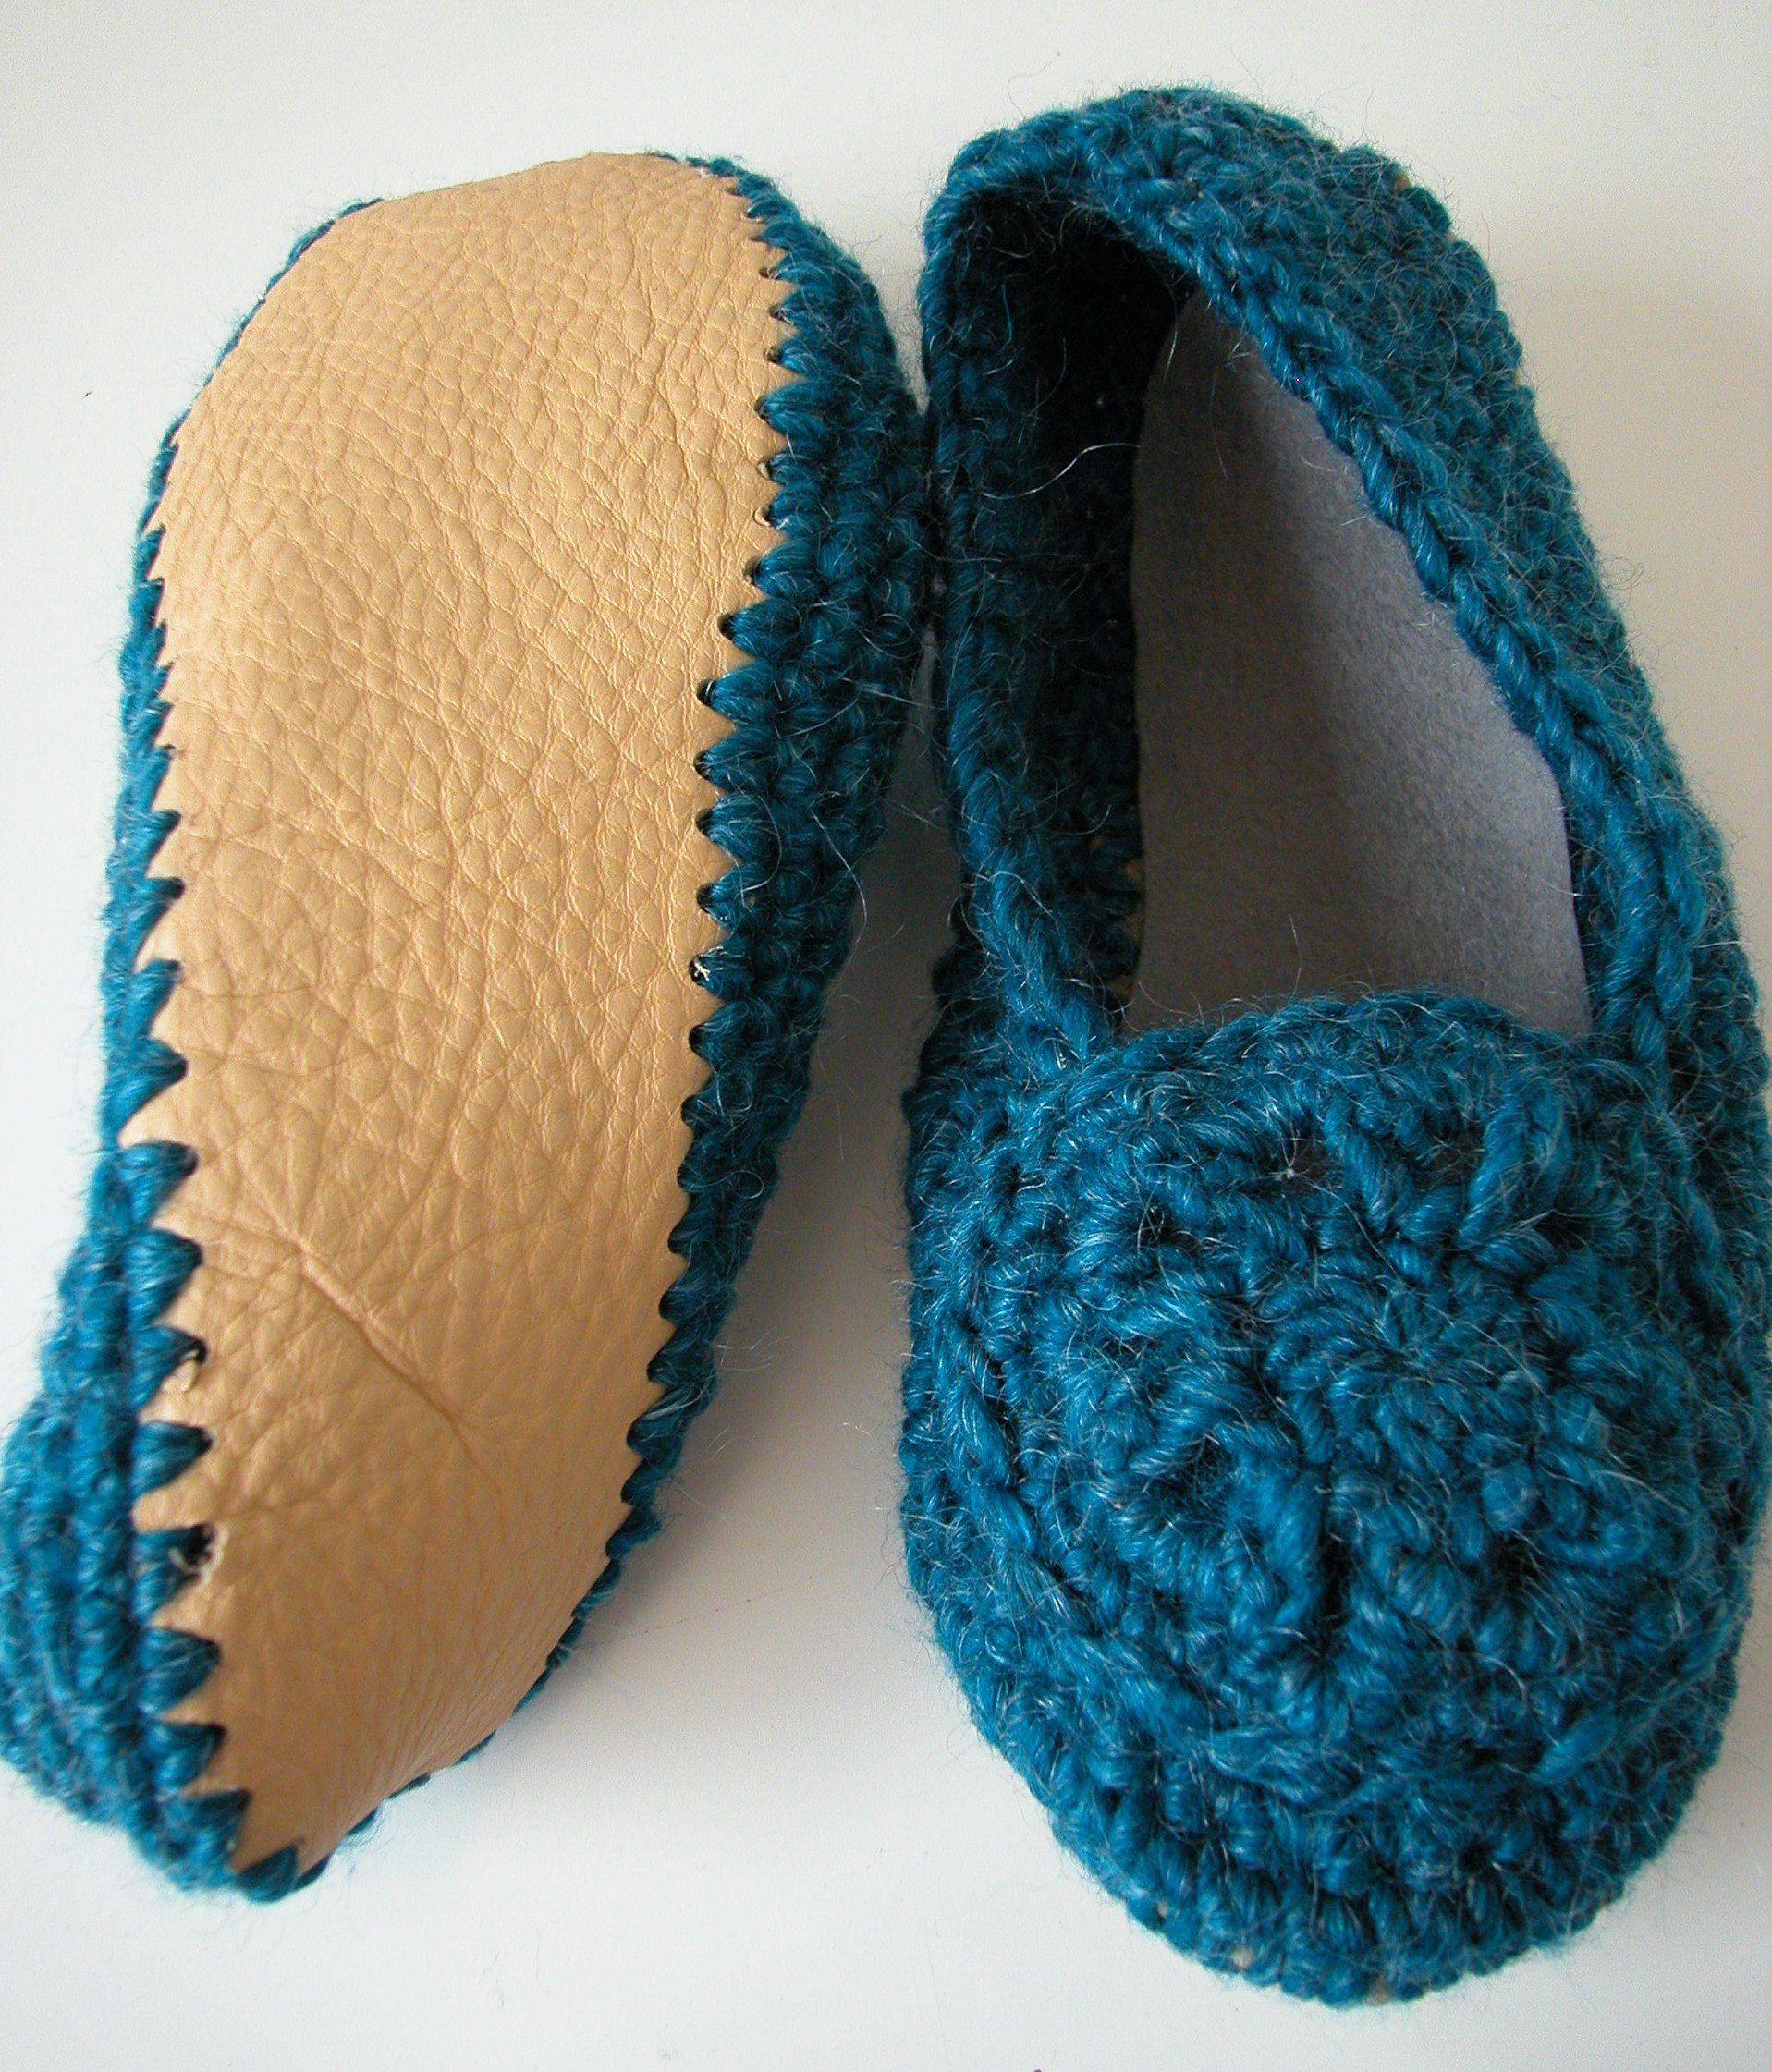 Crochet Slippers : crochet slipper class the knit cafe